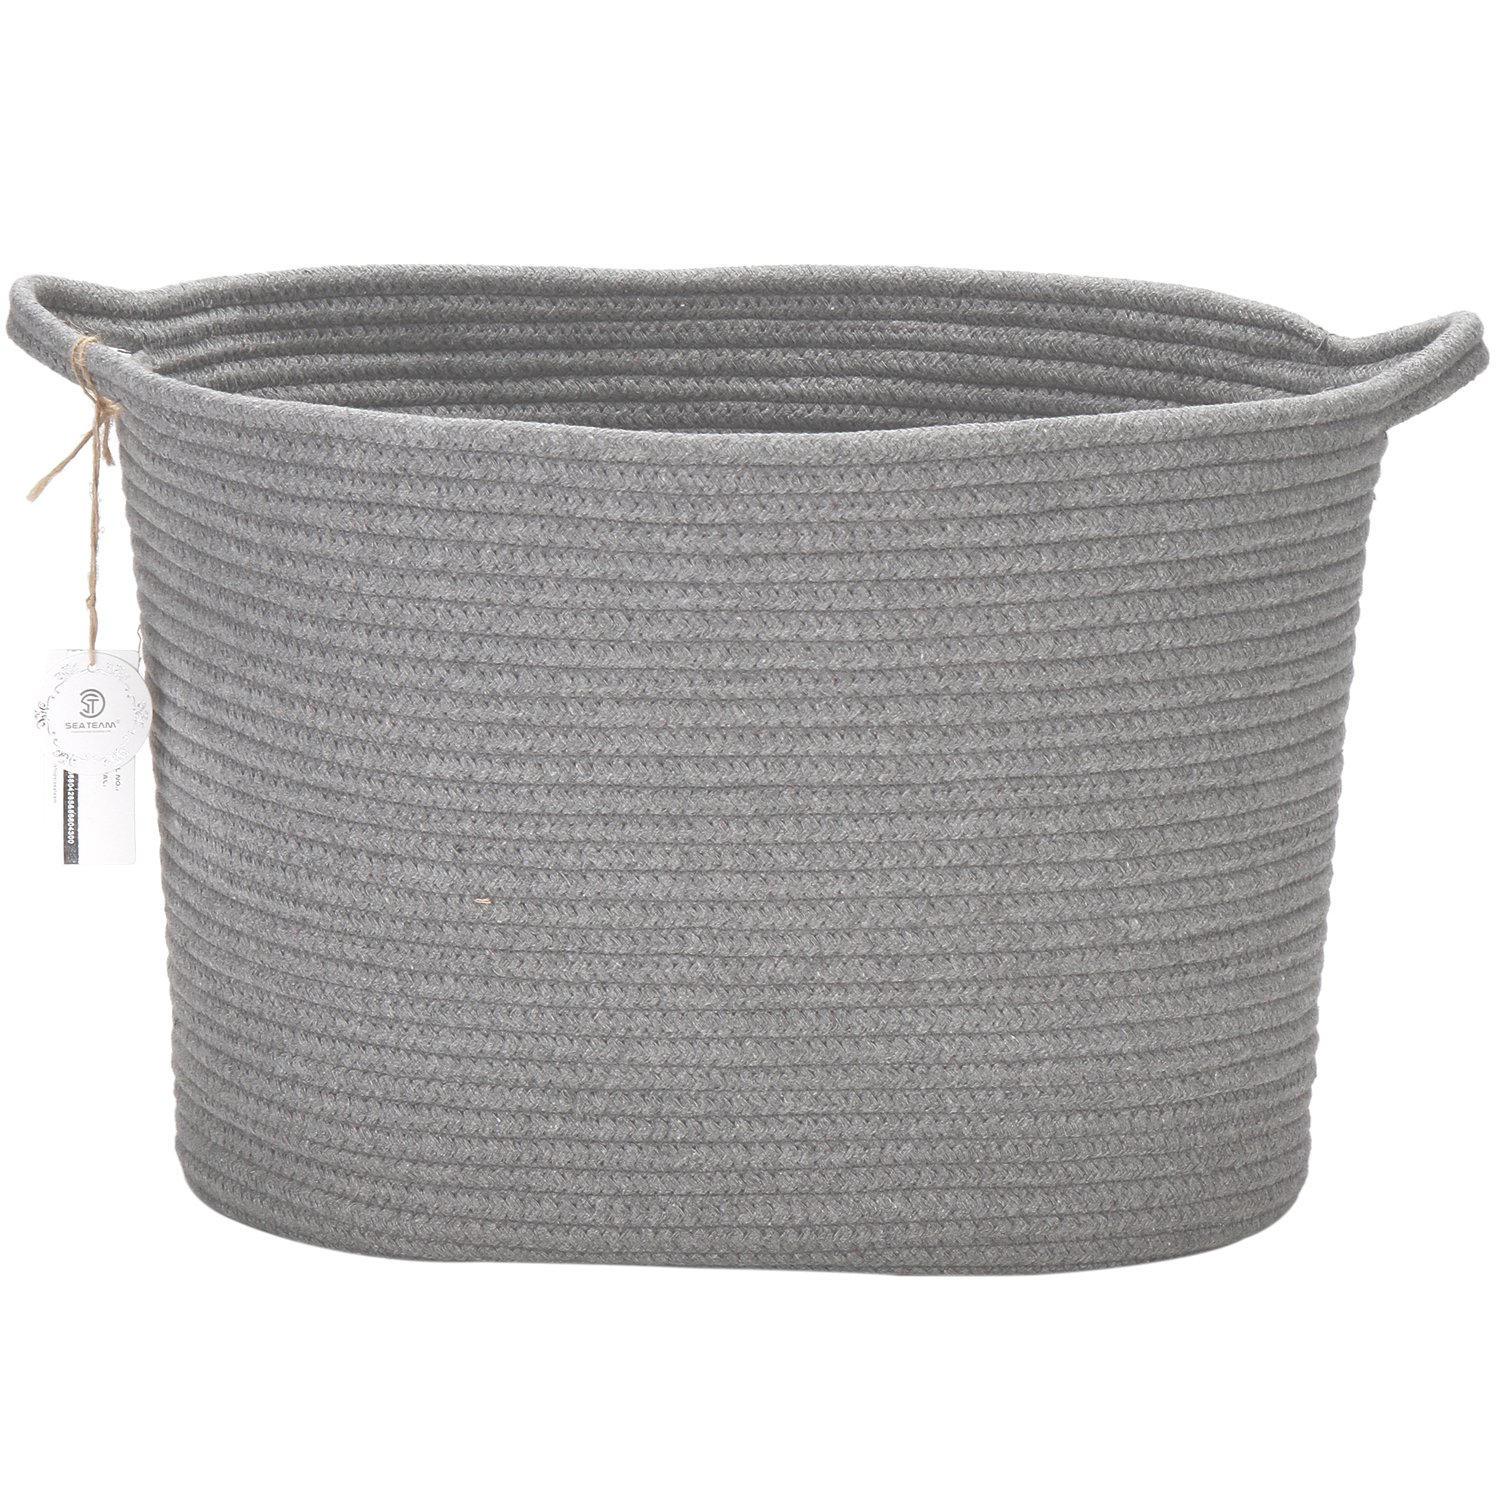 Sea Team 14' x 9' x 11' Oval Natural Cotton Thread Woven Rope Storage Basket Bin Hamper with Handles for Nursery Kid's Room Storage (Grey)